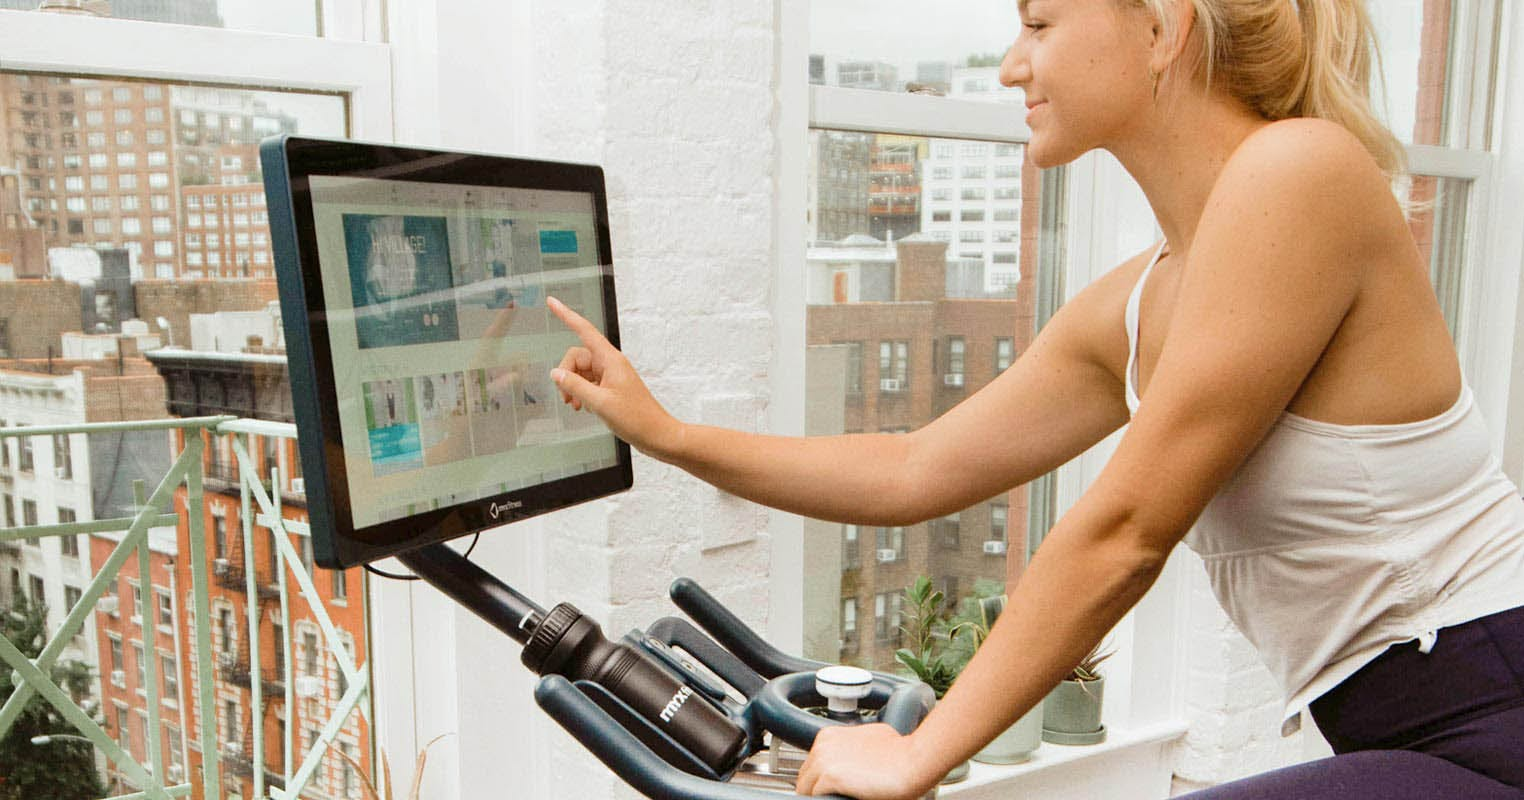 Here's What Users Say About the 9 Best Peloton Alternatives